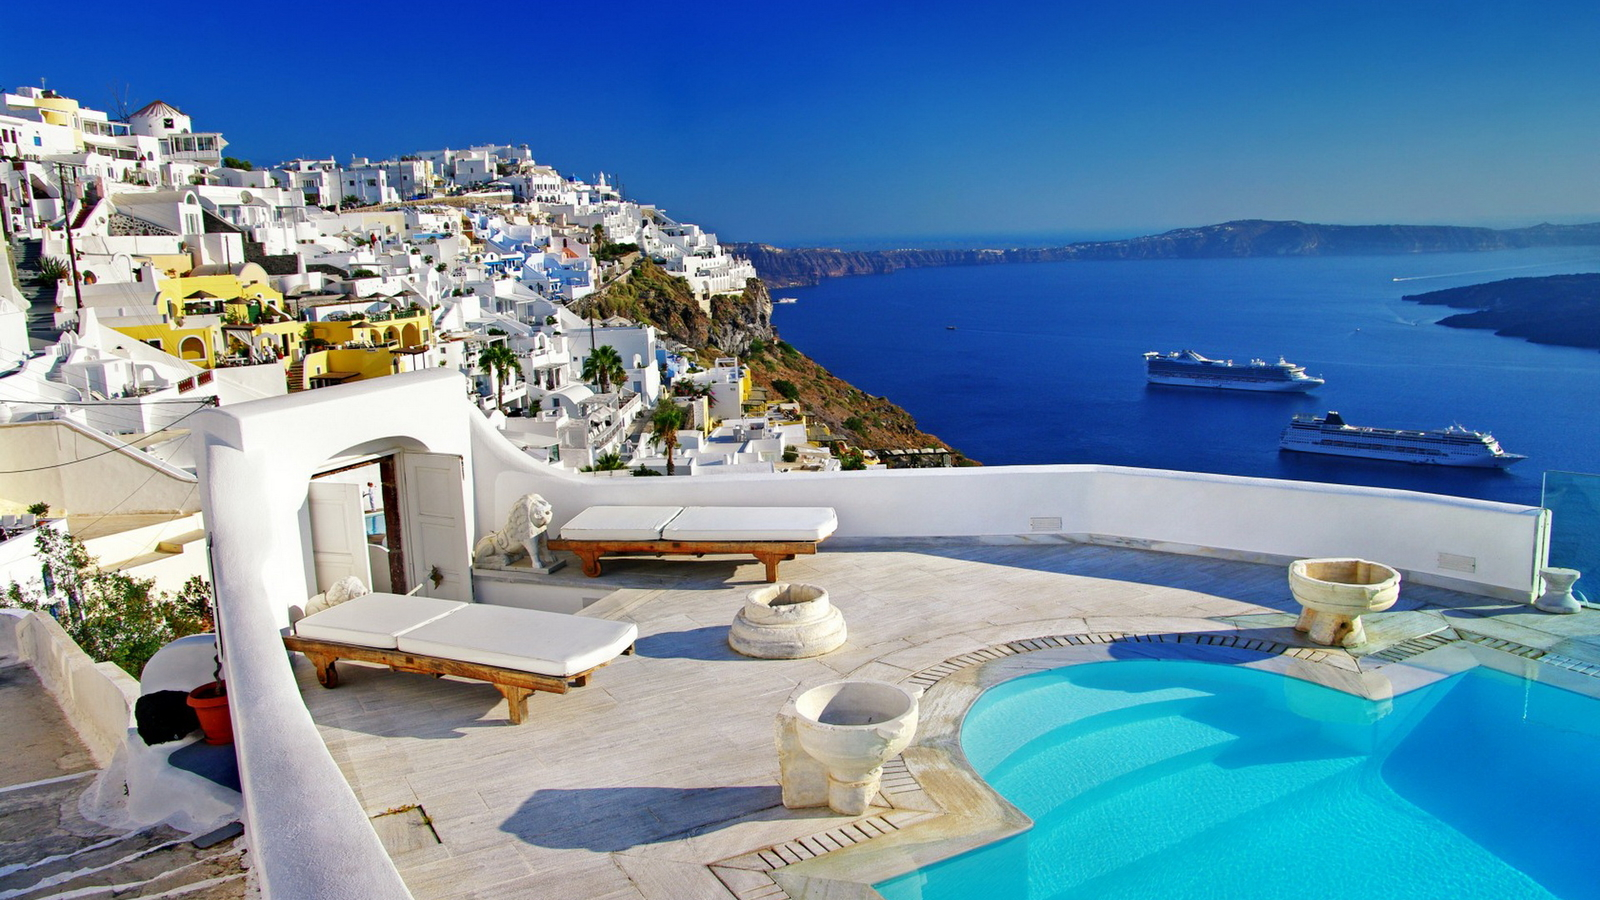 Santorini beautiful wallpaper 49588